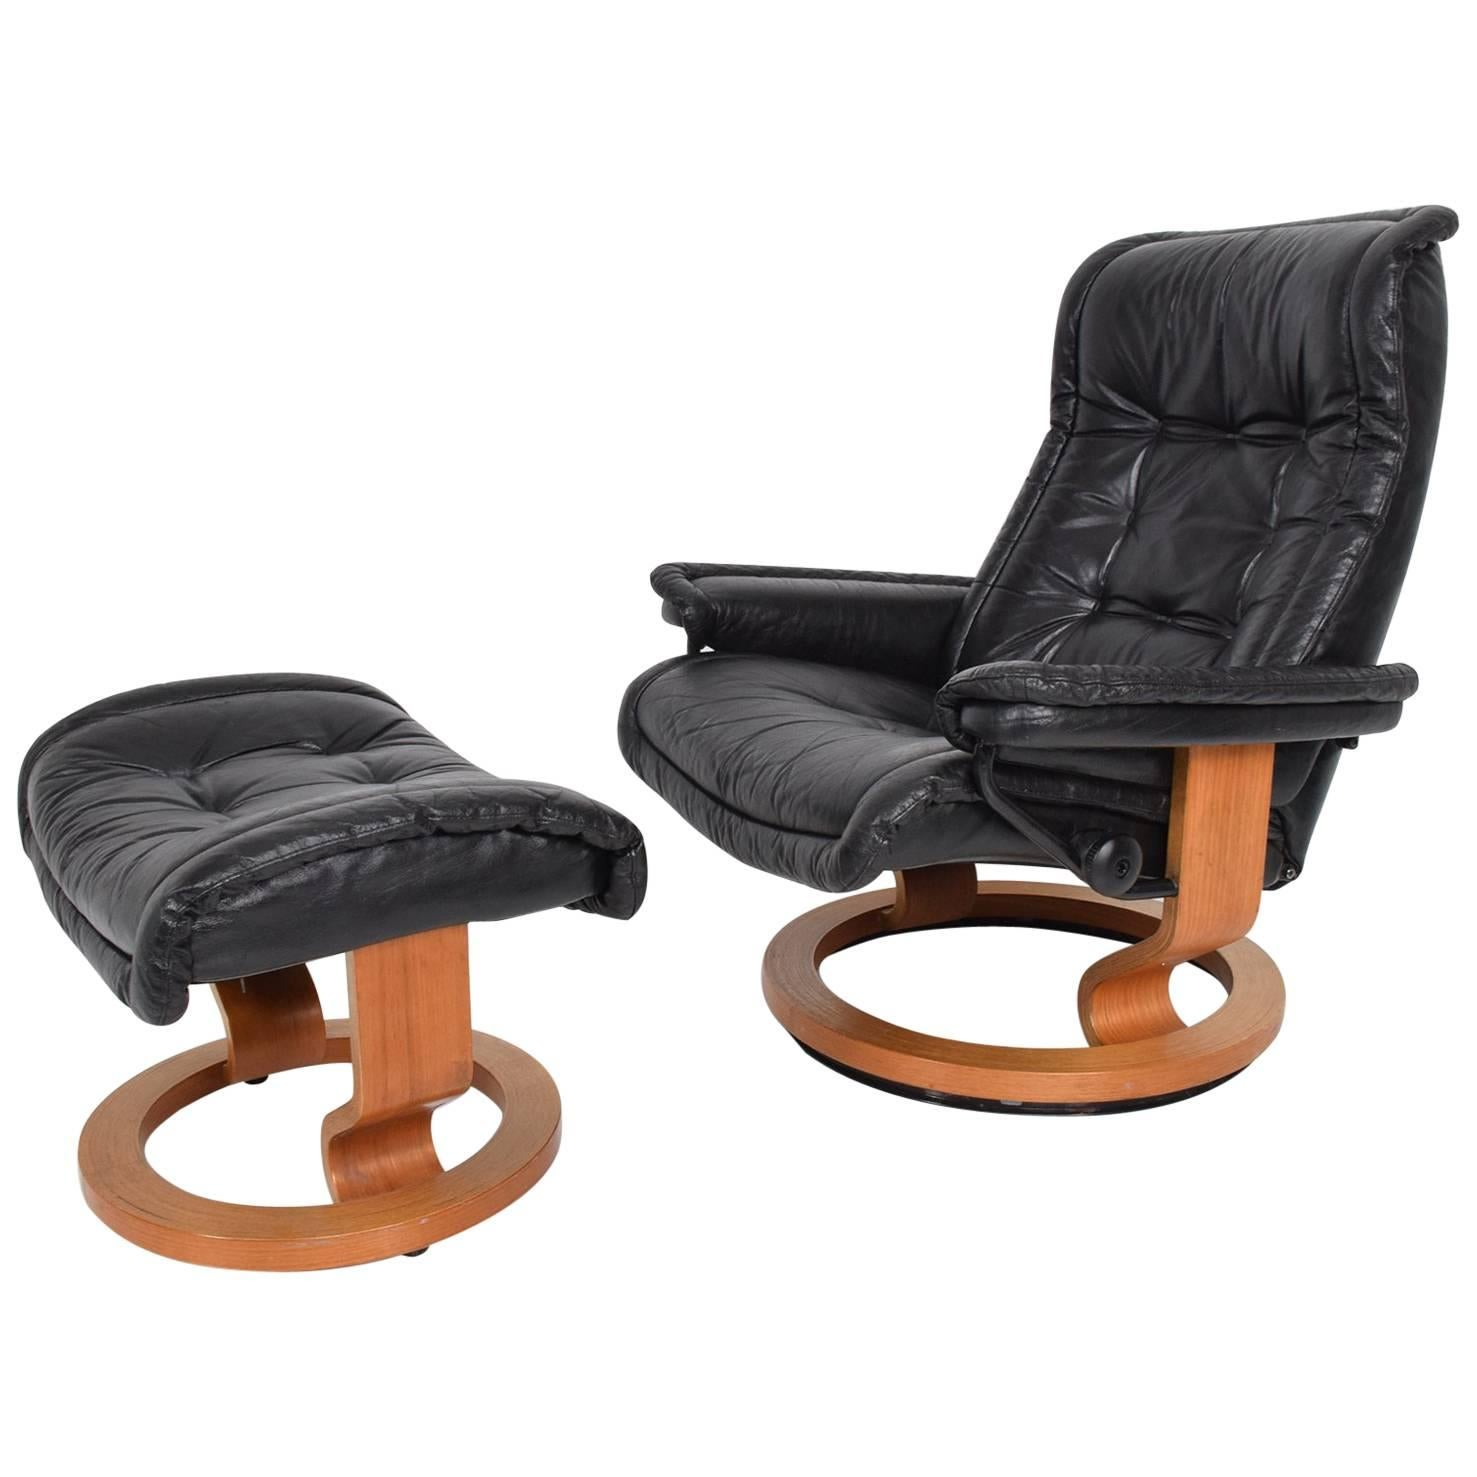 stressless chair sale covers for hire roodepoort vintage scandinavian modern ekornes recliner and ottoman